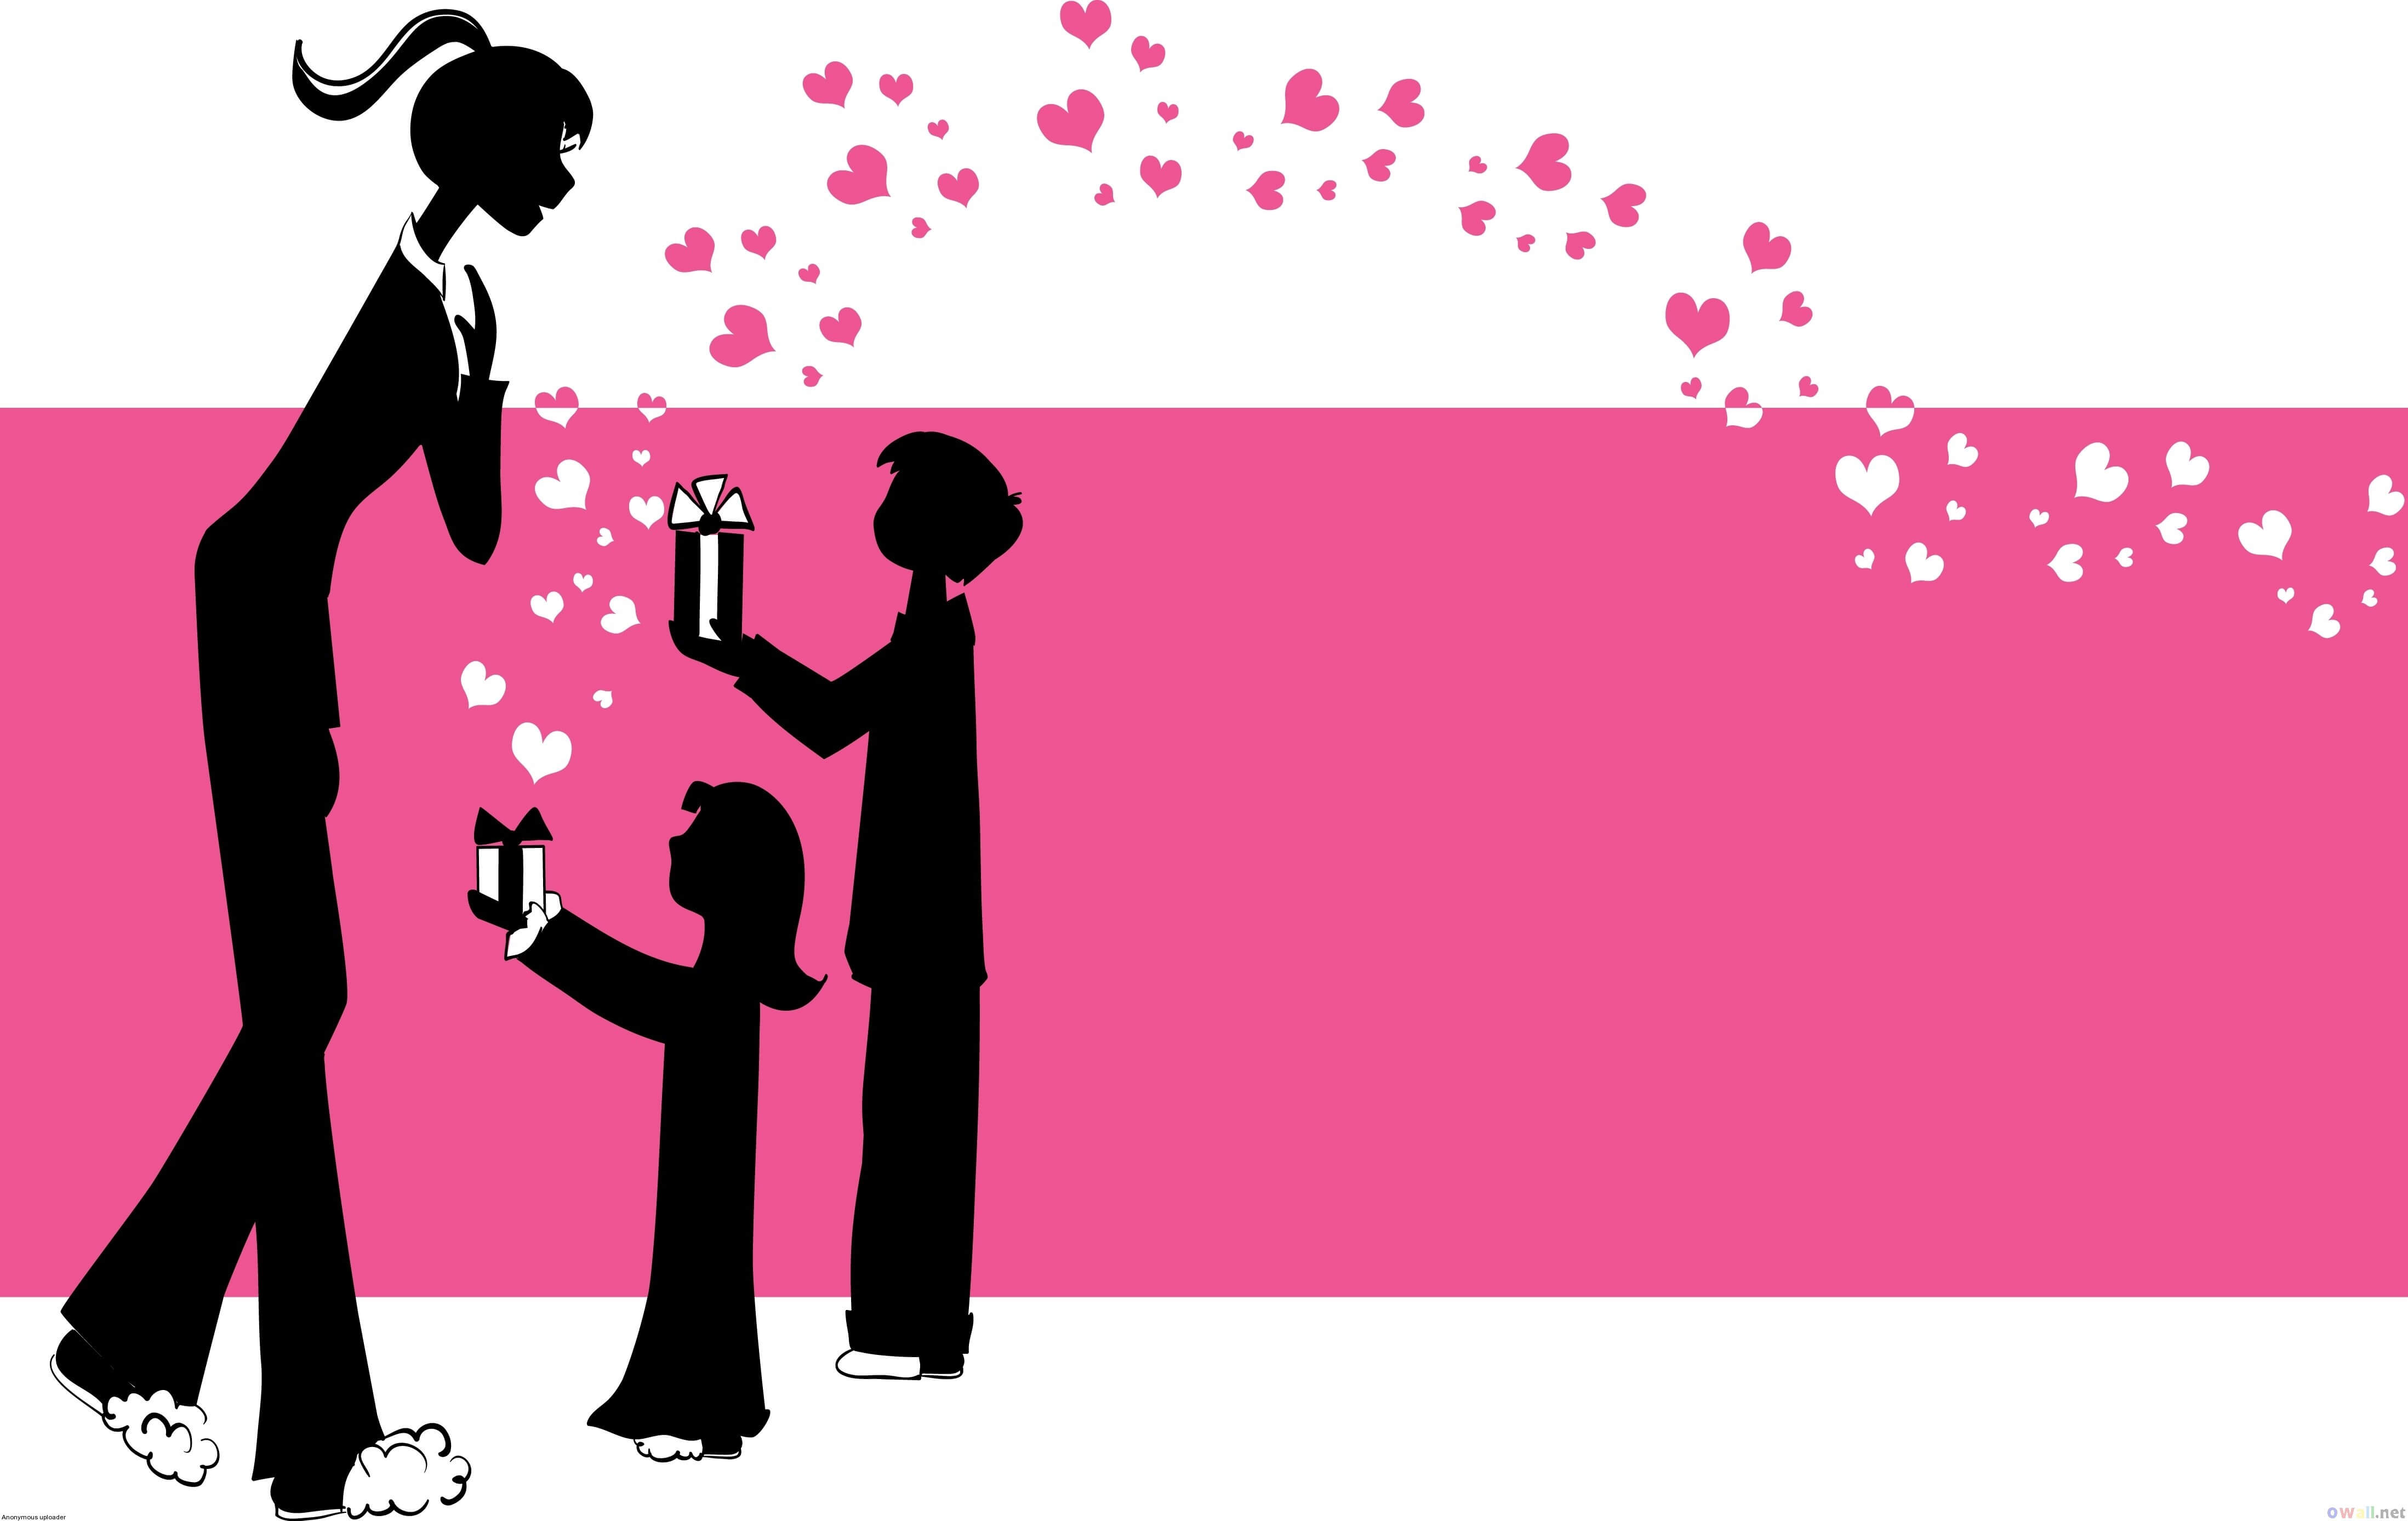 happy mothers day wishes hd wallpaper desktop silhouette